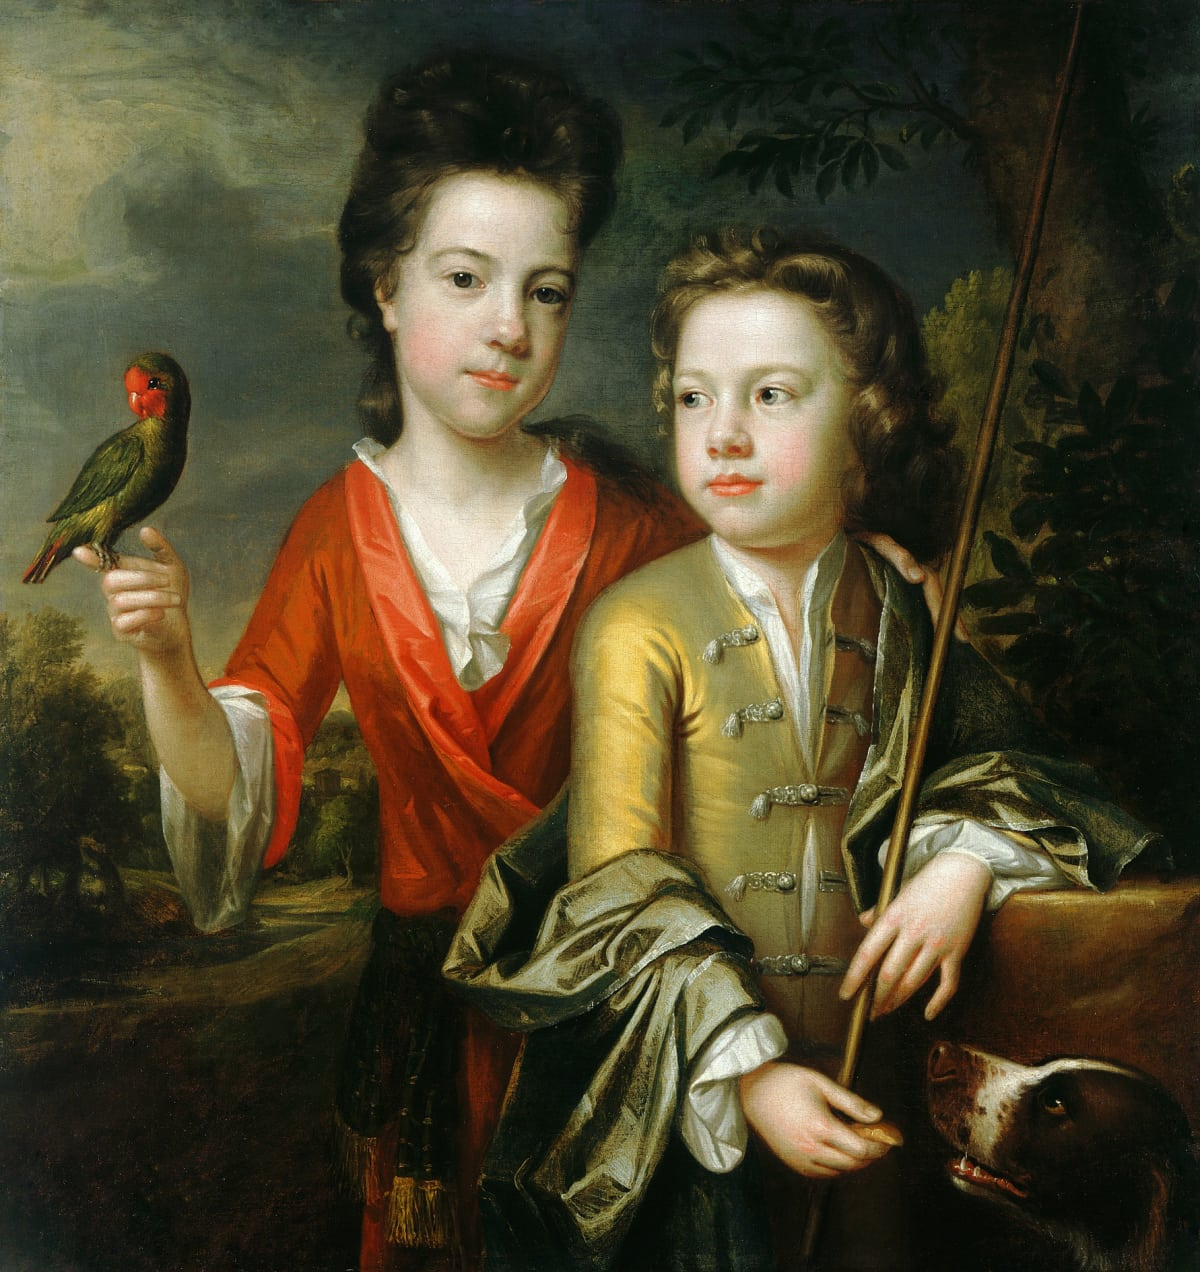 Johann Kerseboom (d. 1708) Two Children, thought to be Emily and Robert Cecil, circa 1690 Oil on canvas 29 ½ x 28 in. (74.5 x 71 cm.)